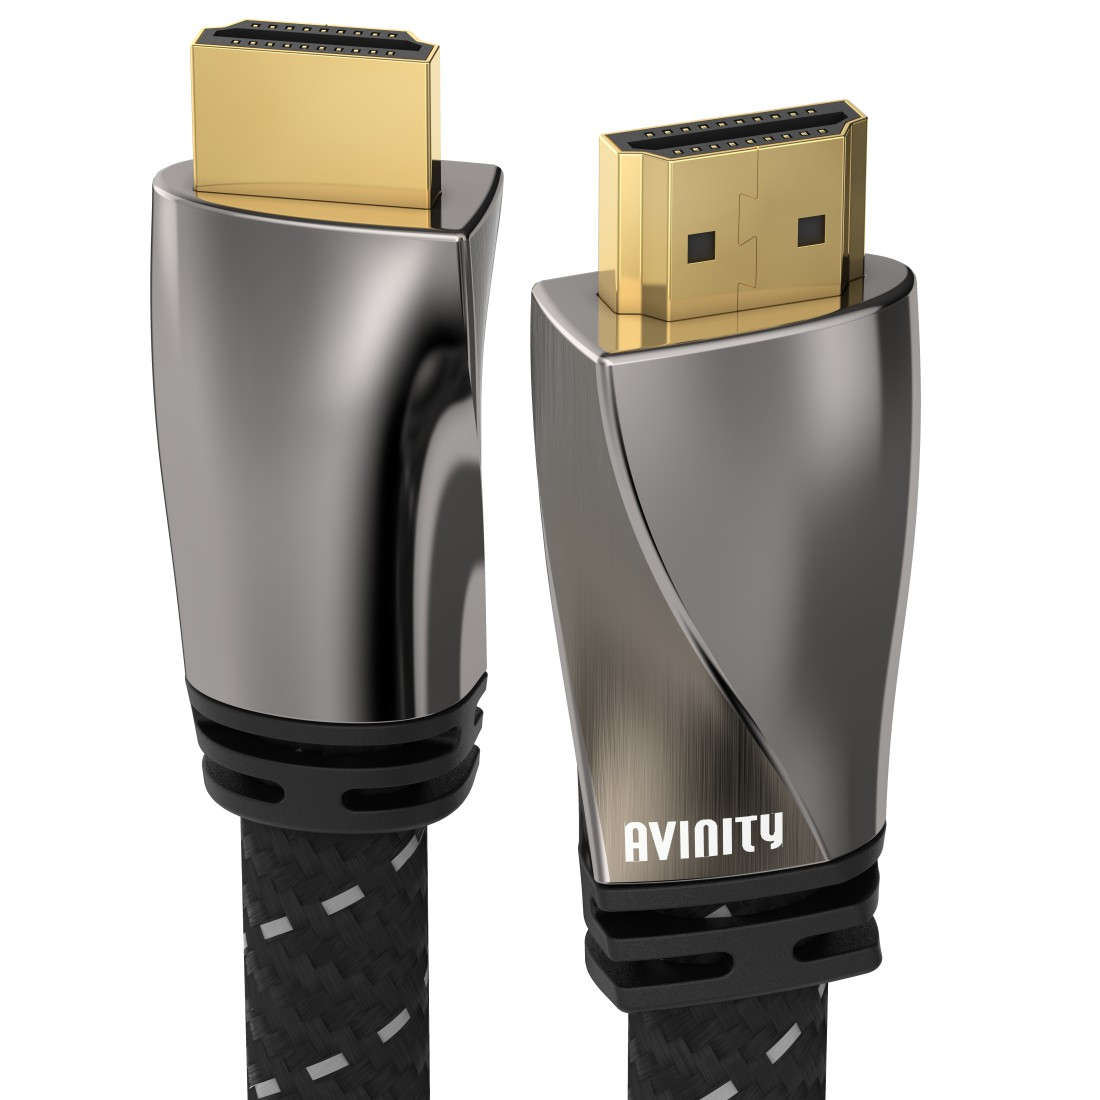 abx Druckfähige Abbildung - Avinity, High Speed HDMI™-Kabel, St. - St., Filter, oval, vergoldet, Ethernet, 3 m